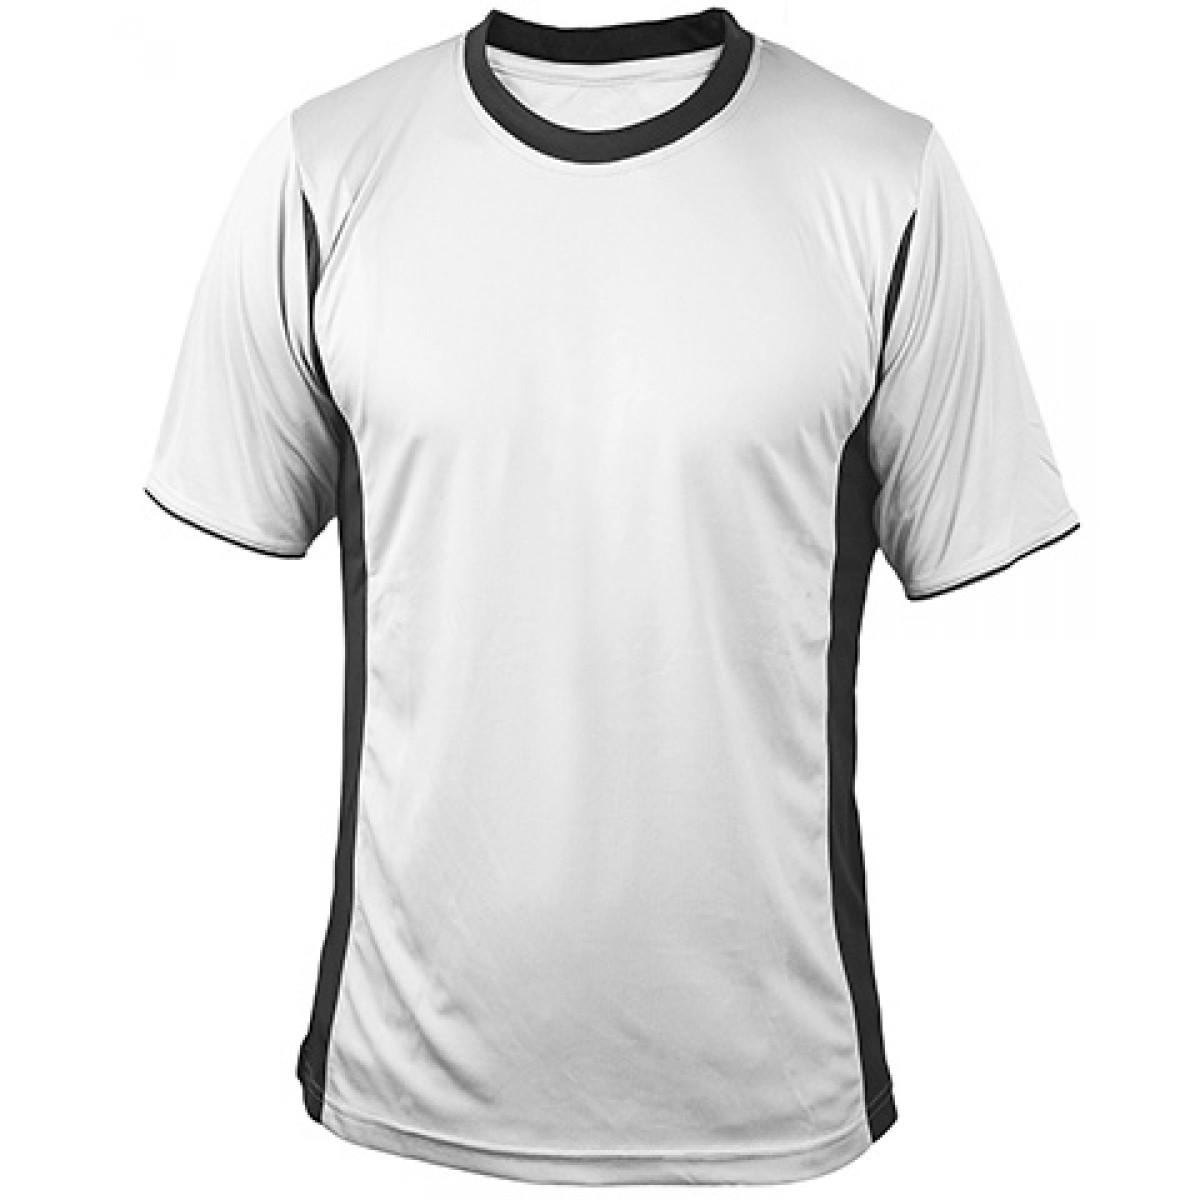 White Short Sleeves Performance With Black Side Insert-Black-YL